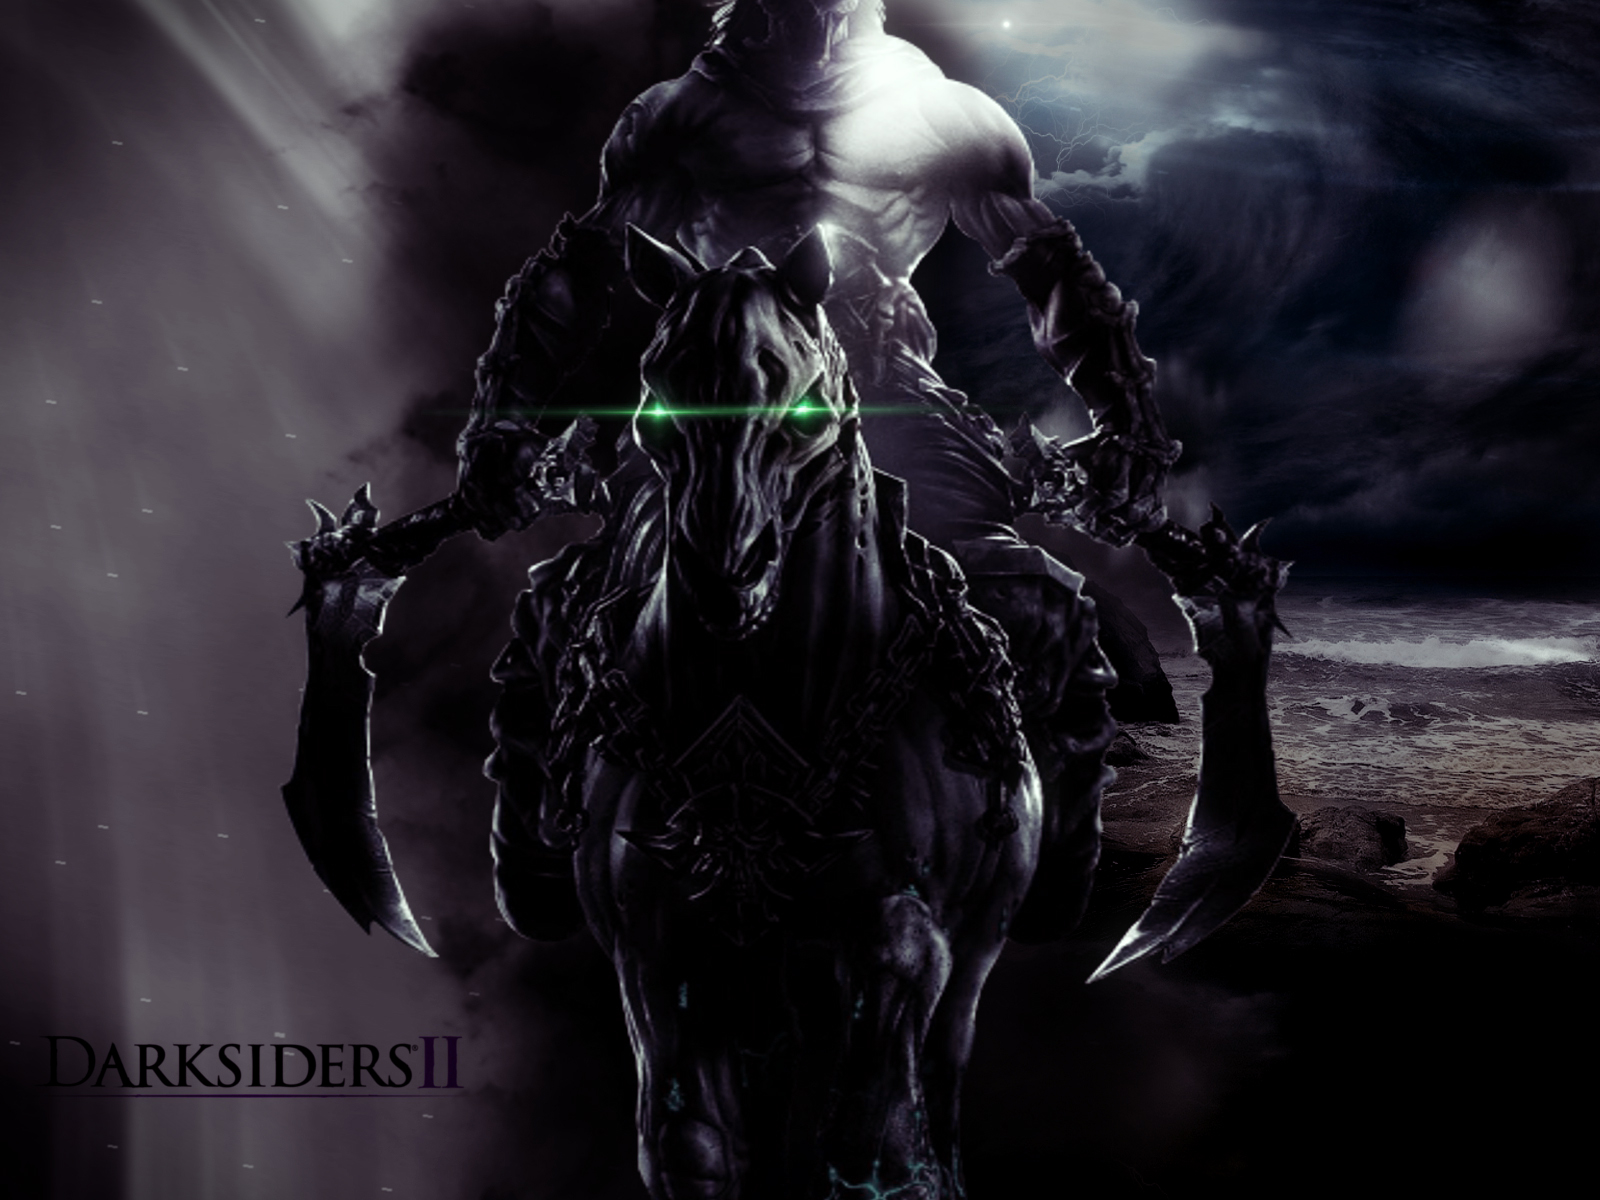 Darksiders 2 Wallpaper 1080P 1600x1200